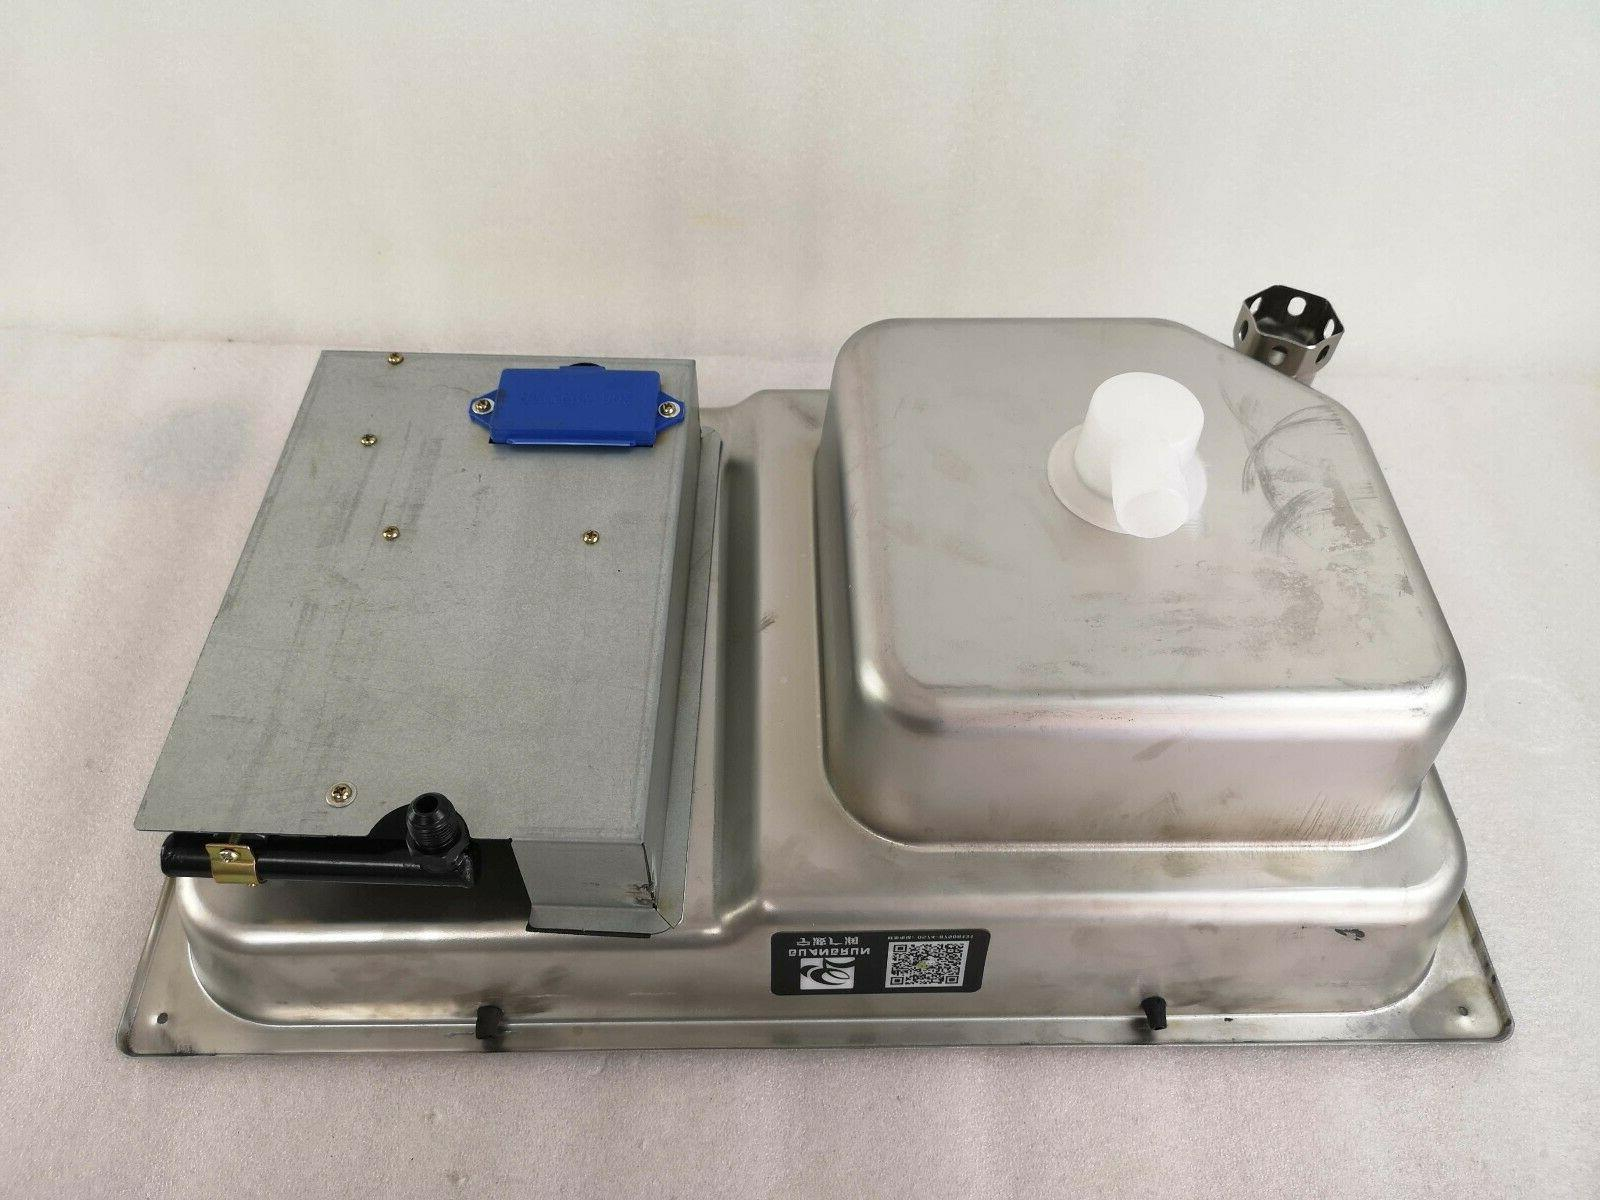 Boat Gas Hob Sink Comb With Tempered Glass Inch